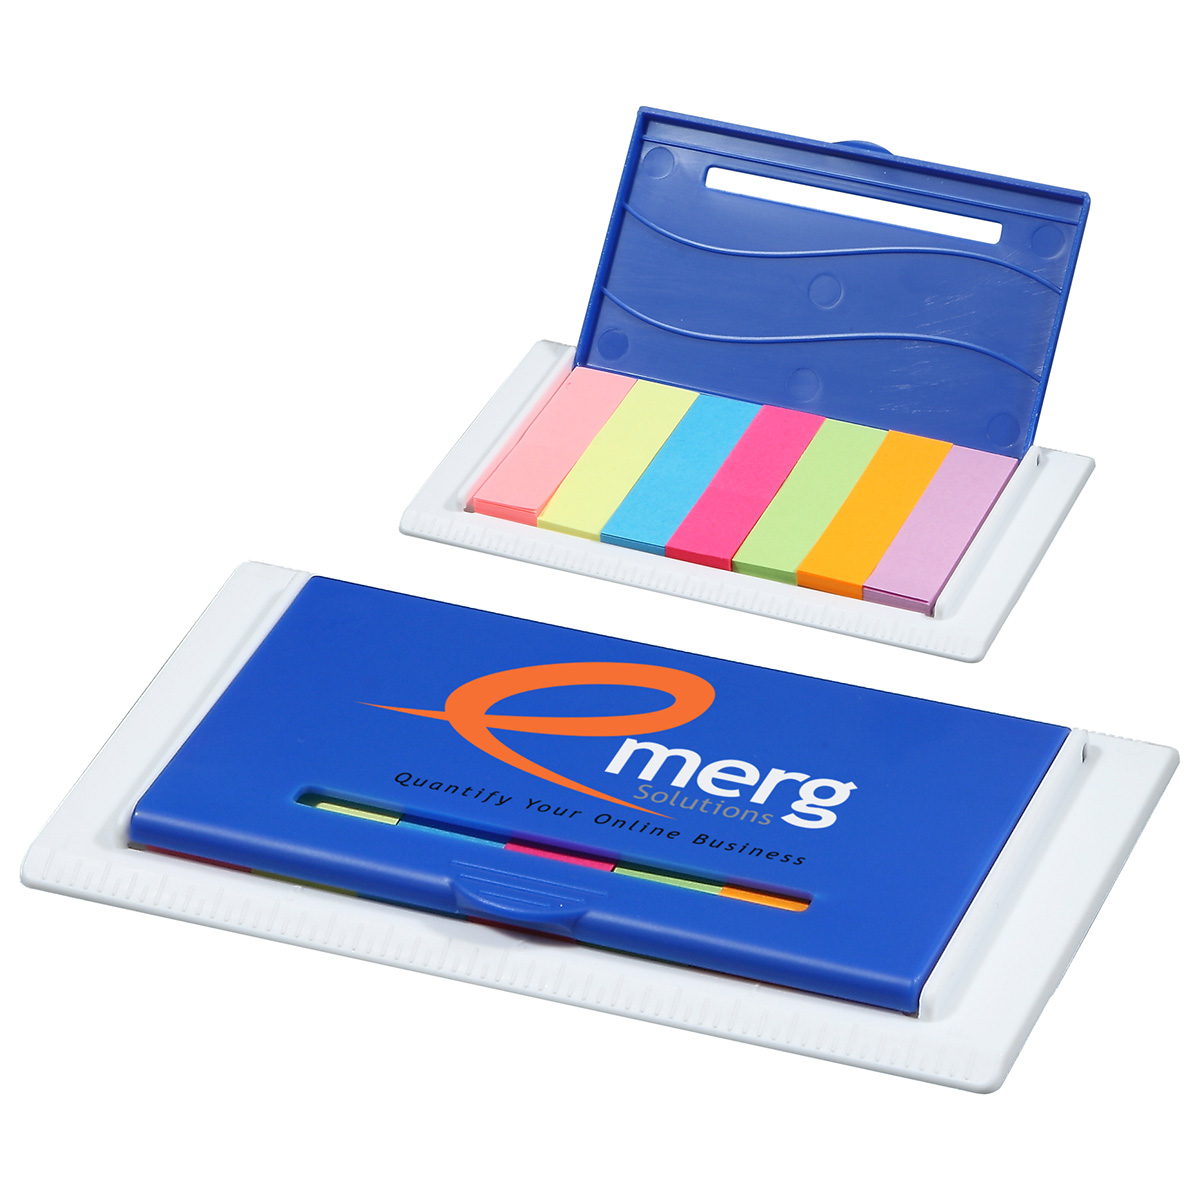 Flag Tag Ruler Case, WOF-FT10 - 1 Colour Imprint